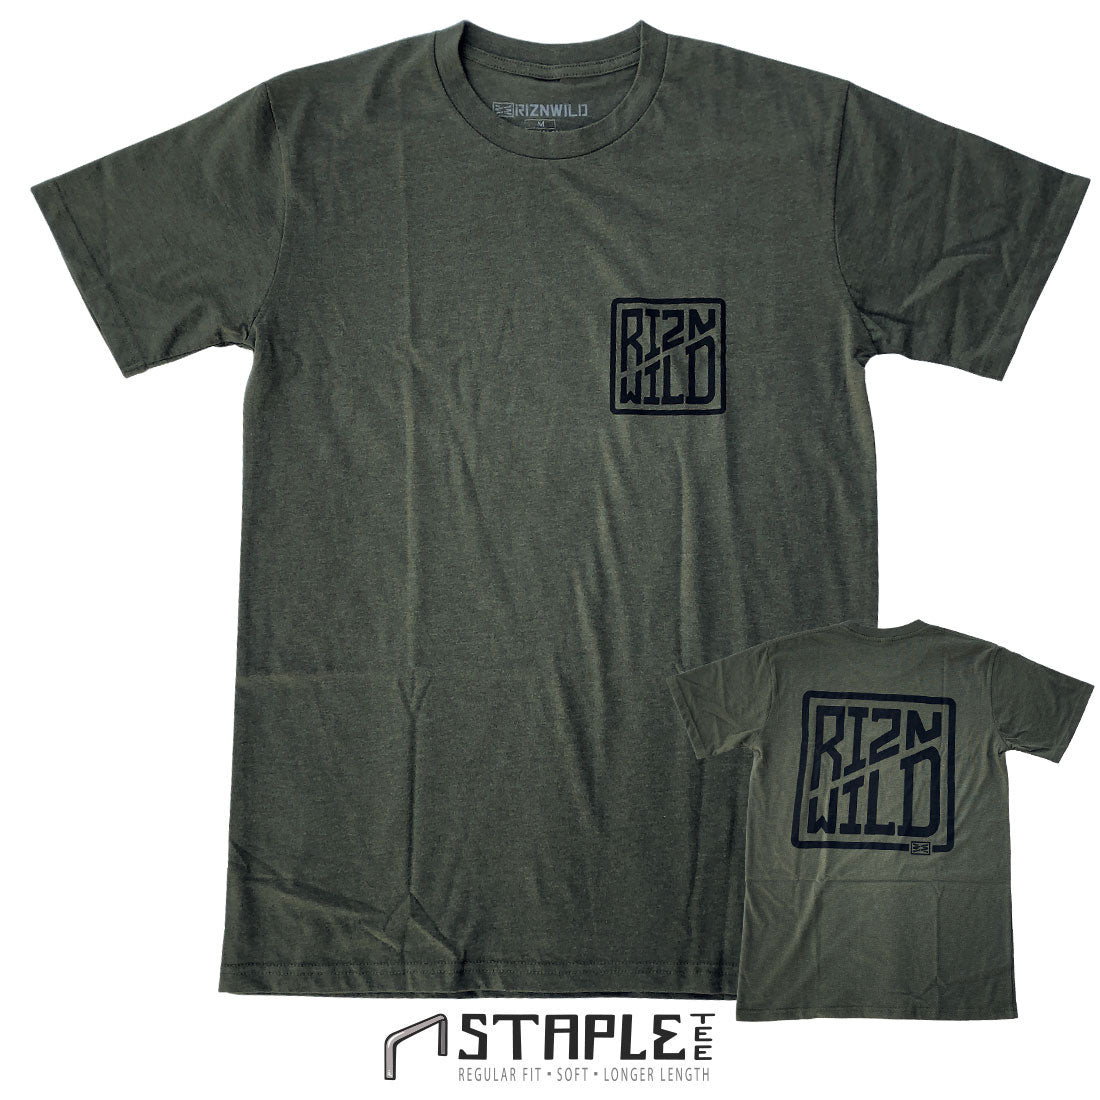 RIZNWILD's Cased men's staple tee in Army Heather